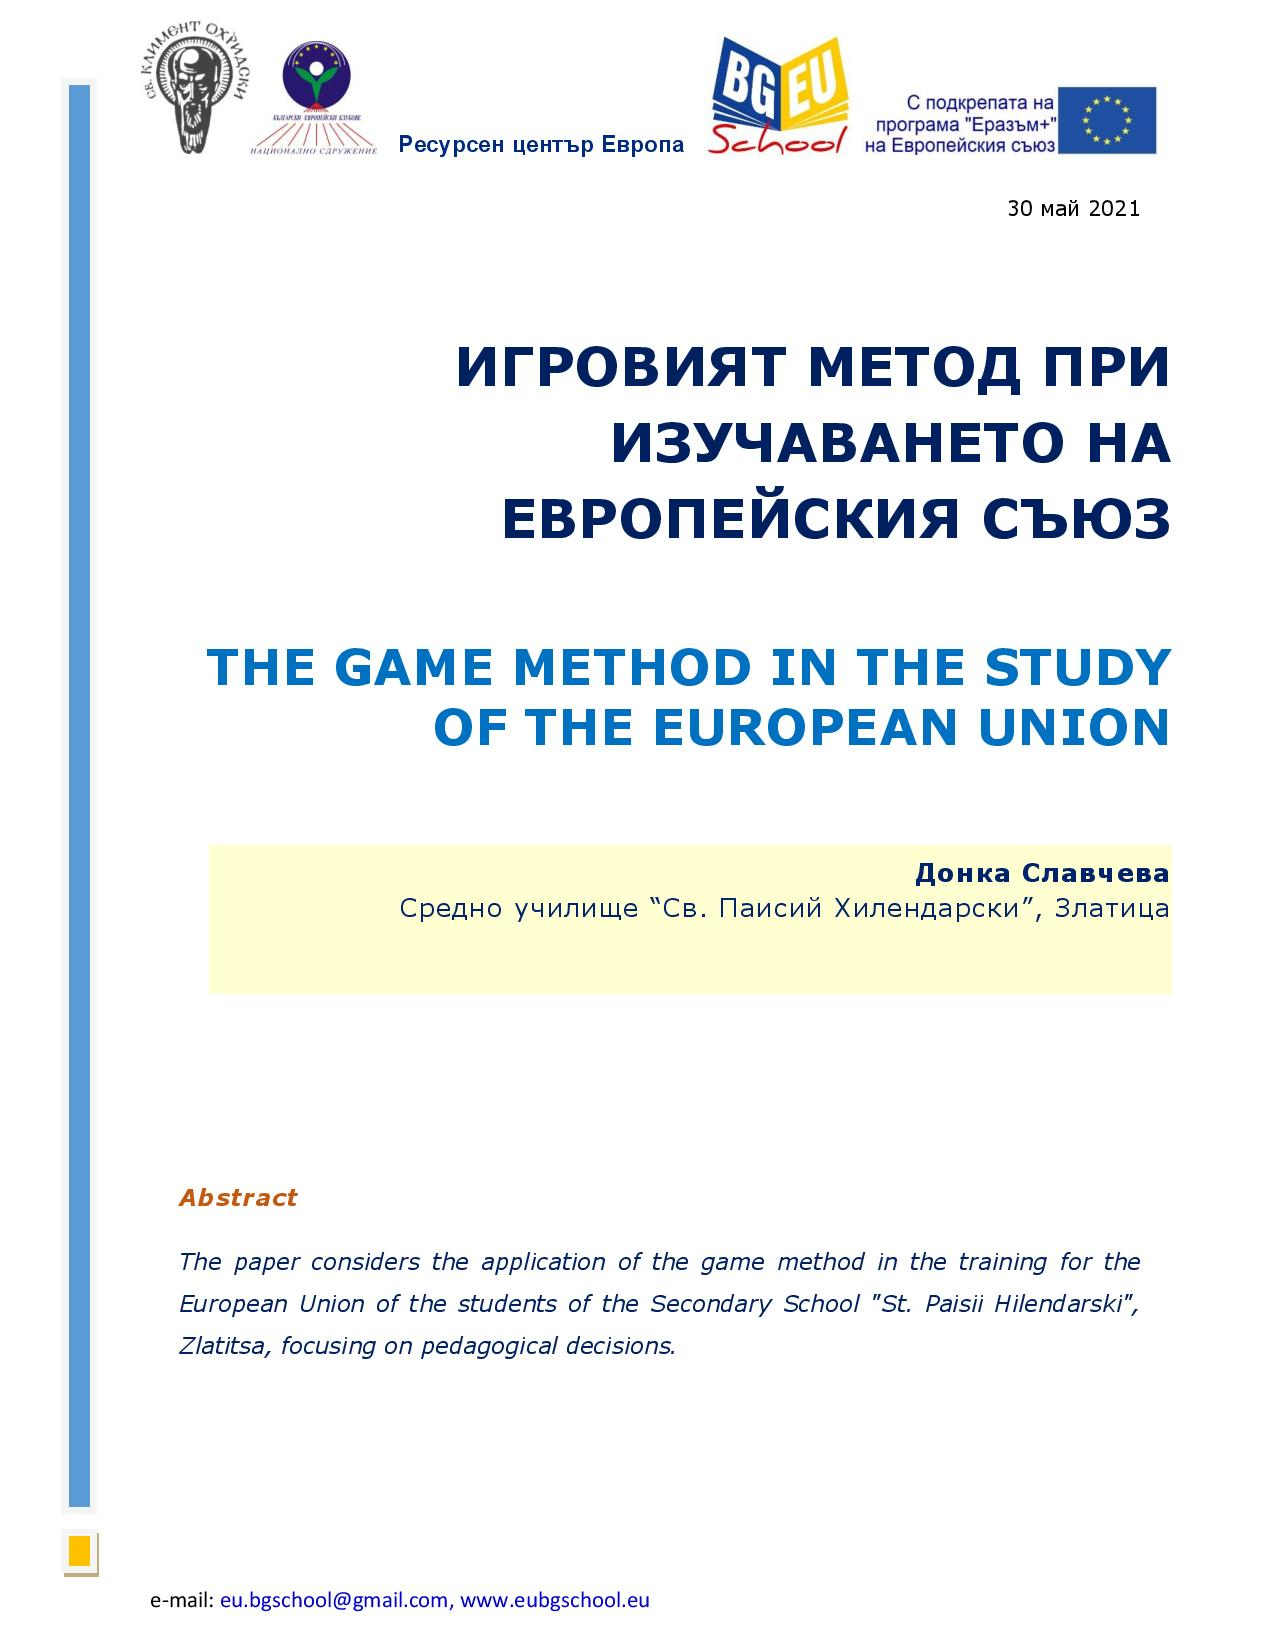 THE GAME METHOD IN THE STUDY OF THE EUROPEAN UNION